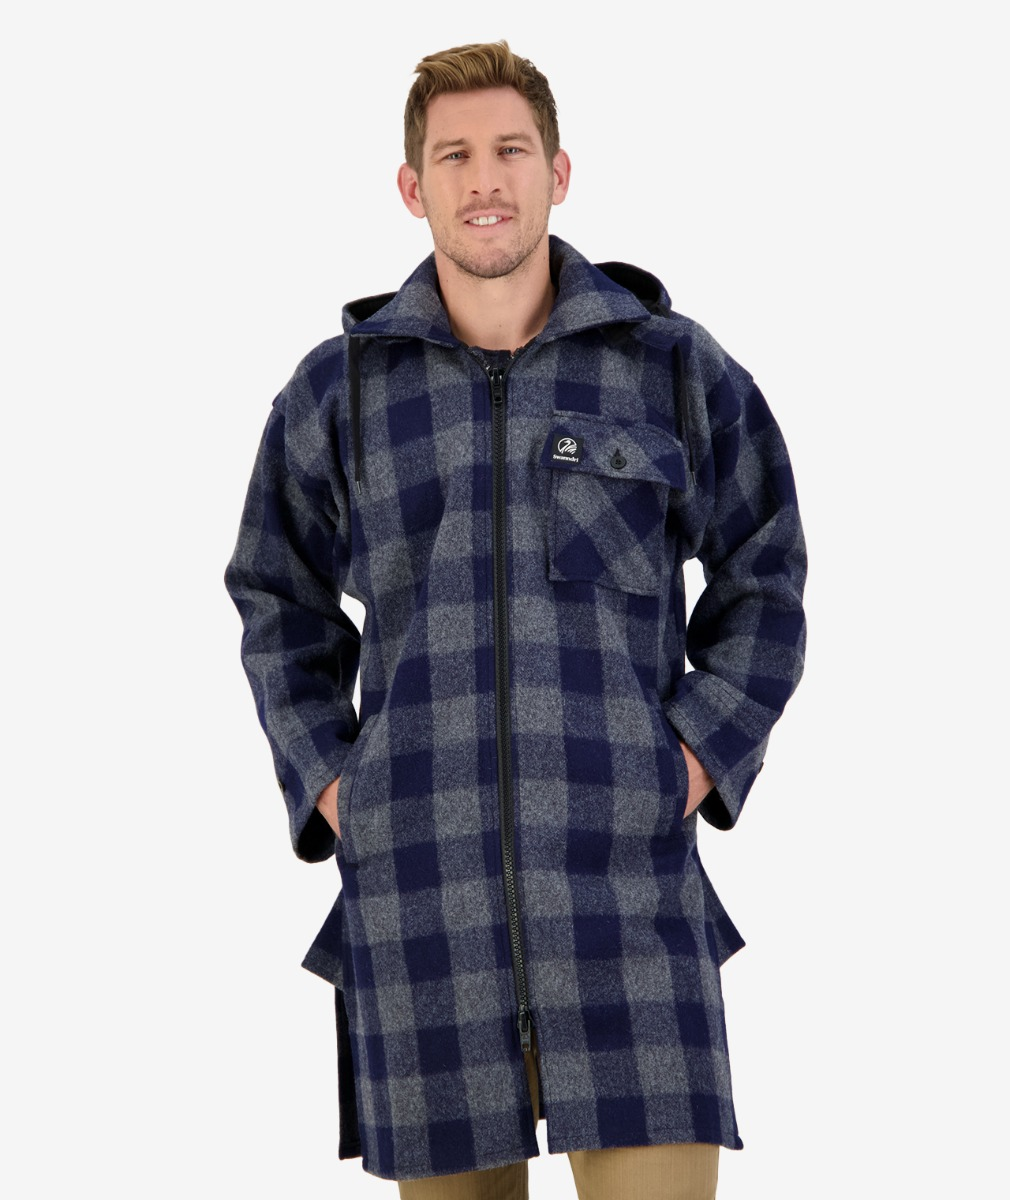 Mosgiel Full Zip Bush Shirt in Blue/Grey Check